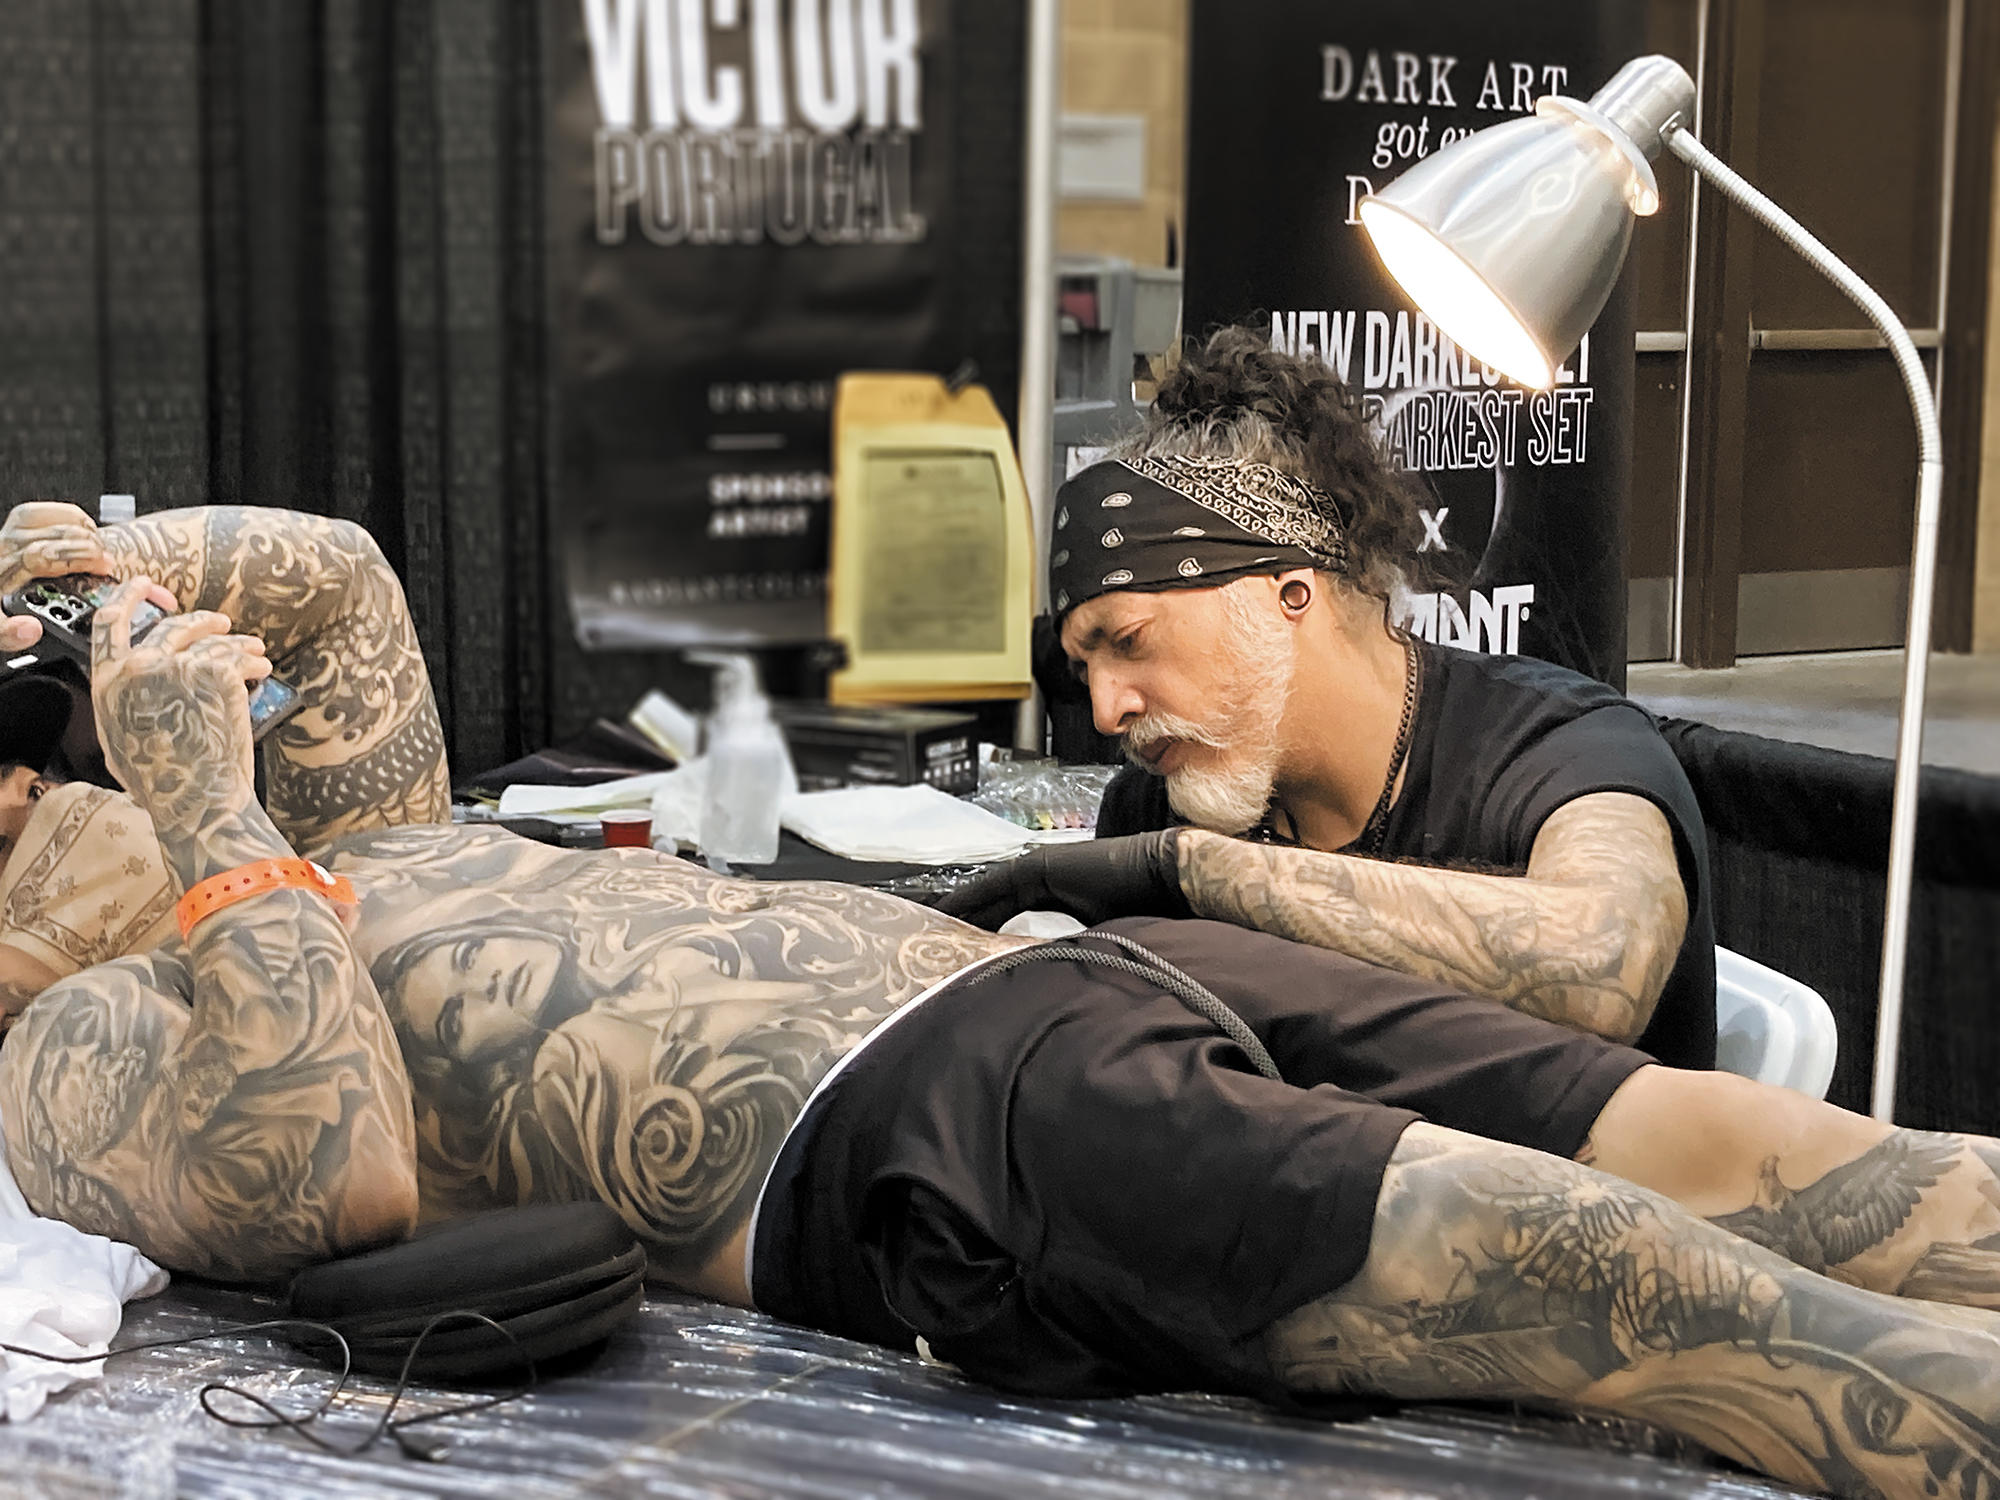 Victor Portugal working on bodysuit at the Golden State Tattoo expo